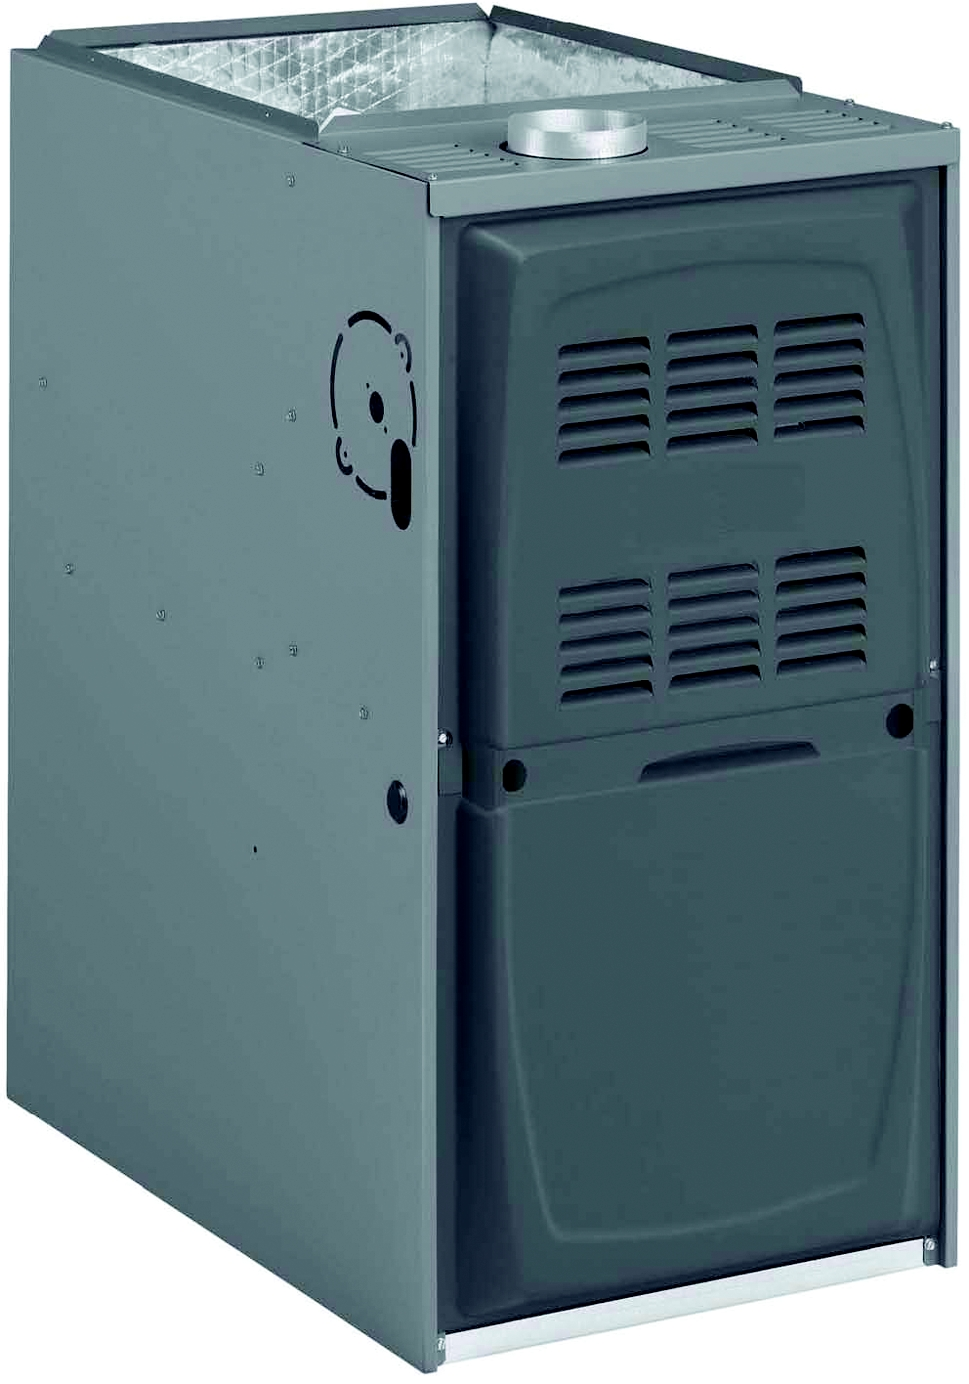 2-Stage Variable Speed Downflow Gas Furnace, 120/60/1 Voltage, Input/Output 110,000/87,000 Btuh, Cooling Capacity 5 Ton